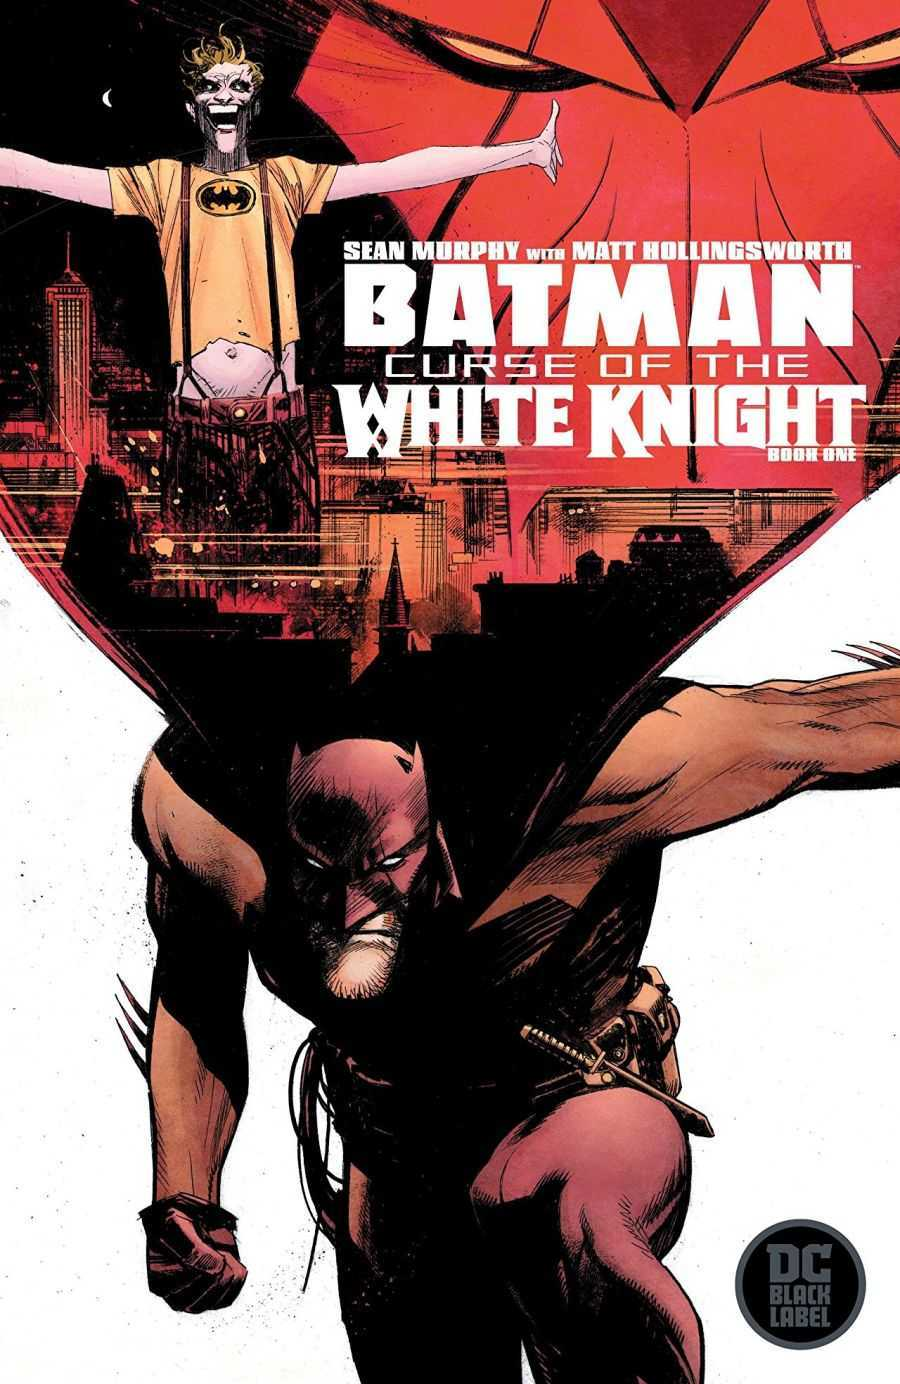 Batman Curse of the White Knight #1